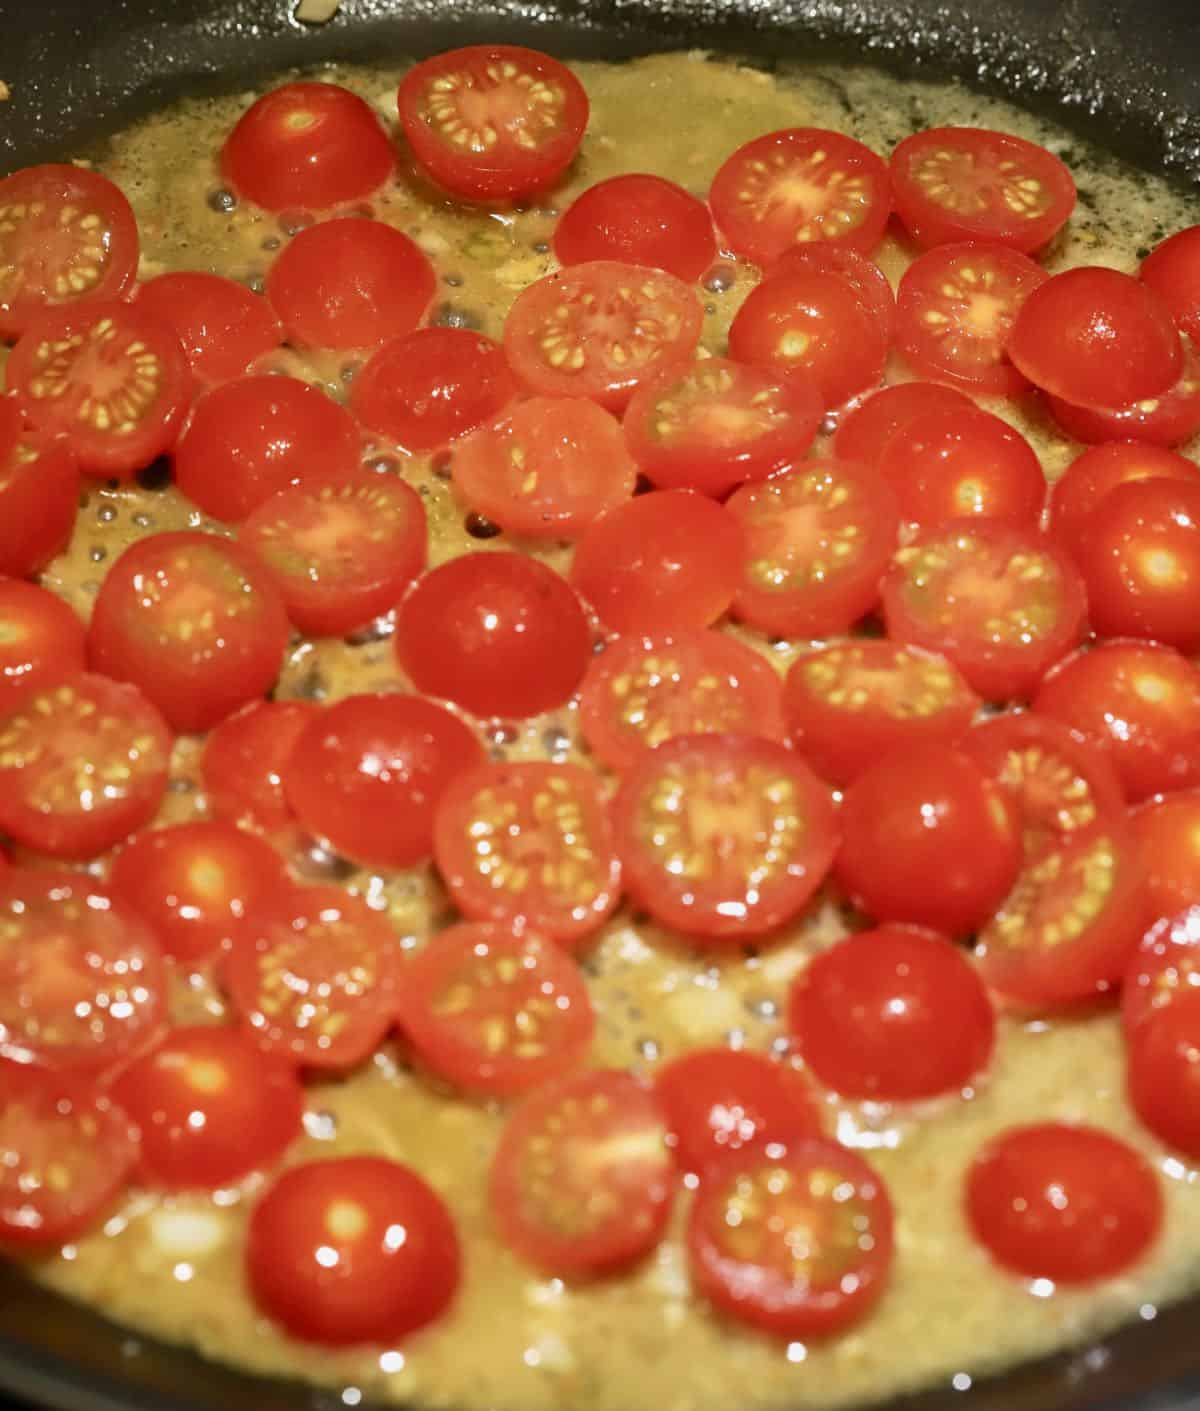 Sliced cherry tomatoes cooking in a skillet.